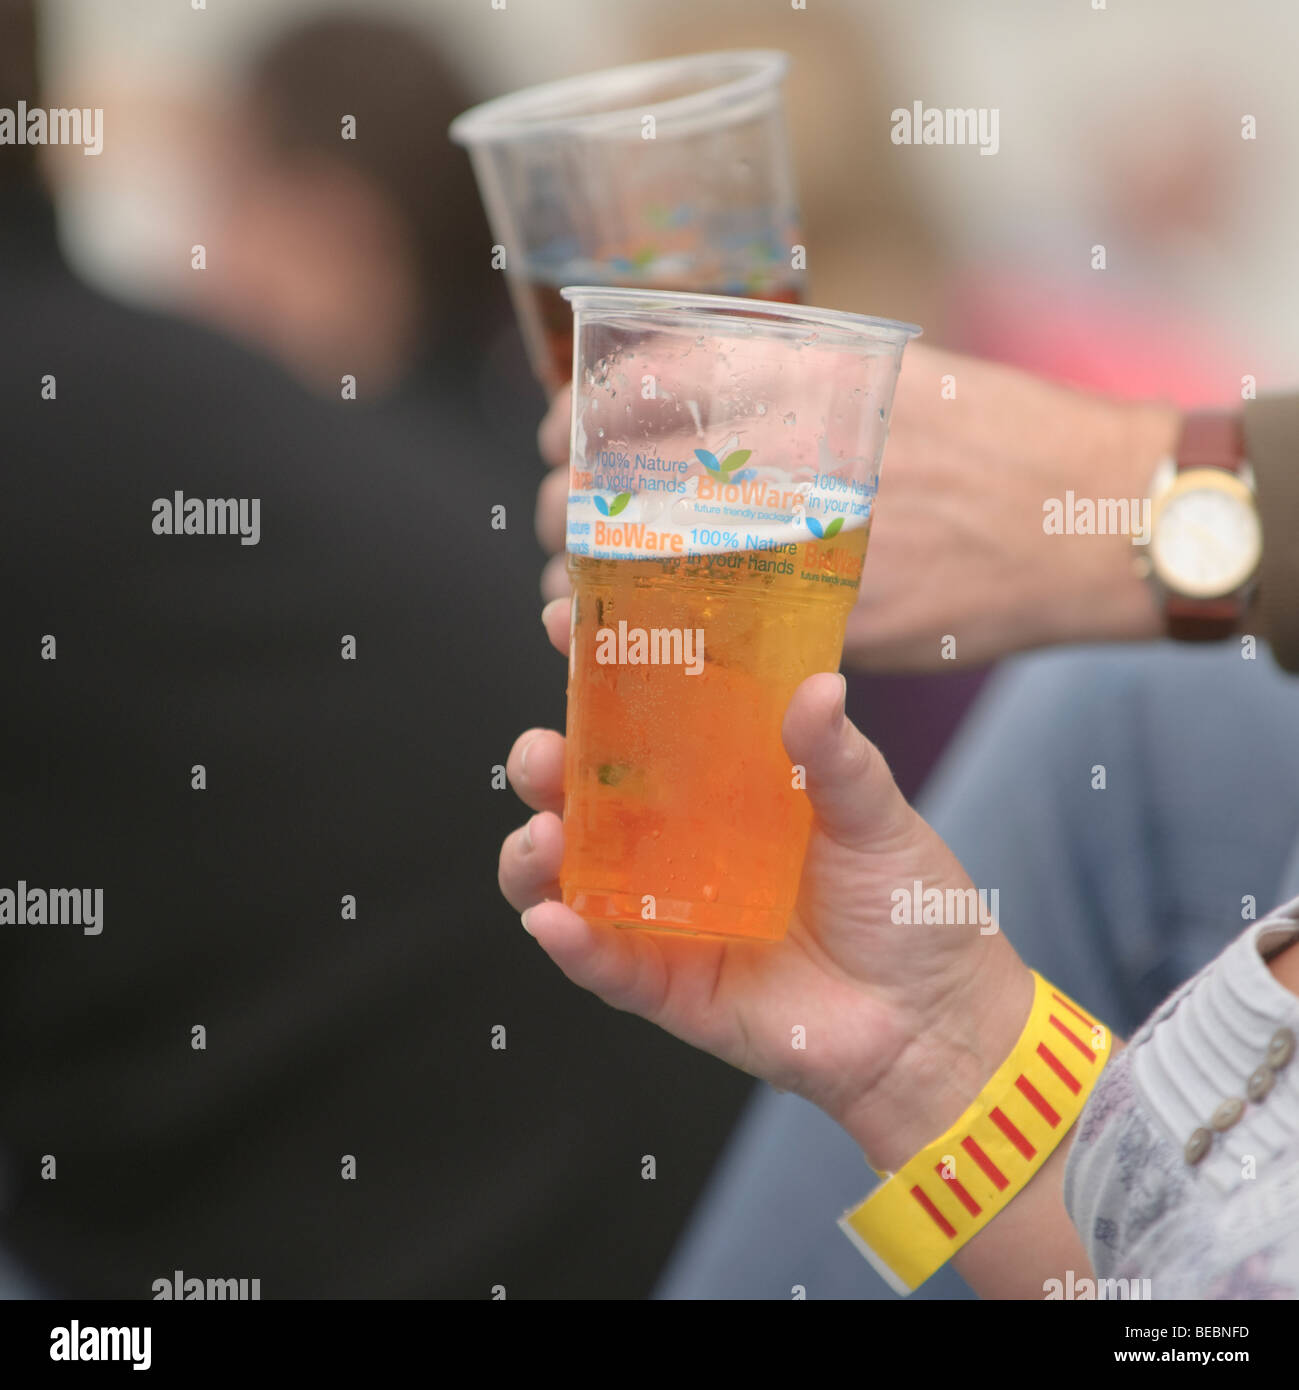 people drinking cider BIOWARE Bio-degradable plastic beer glasses at Abergavenny food festival, Monmouthshire south - Stock Image